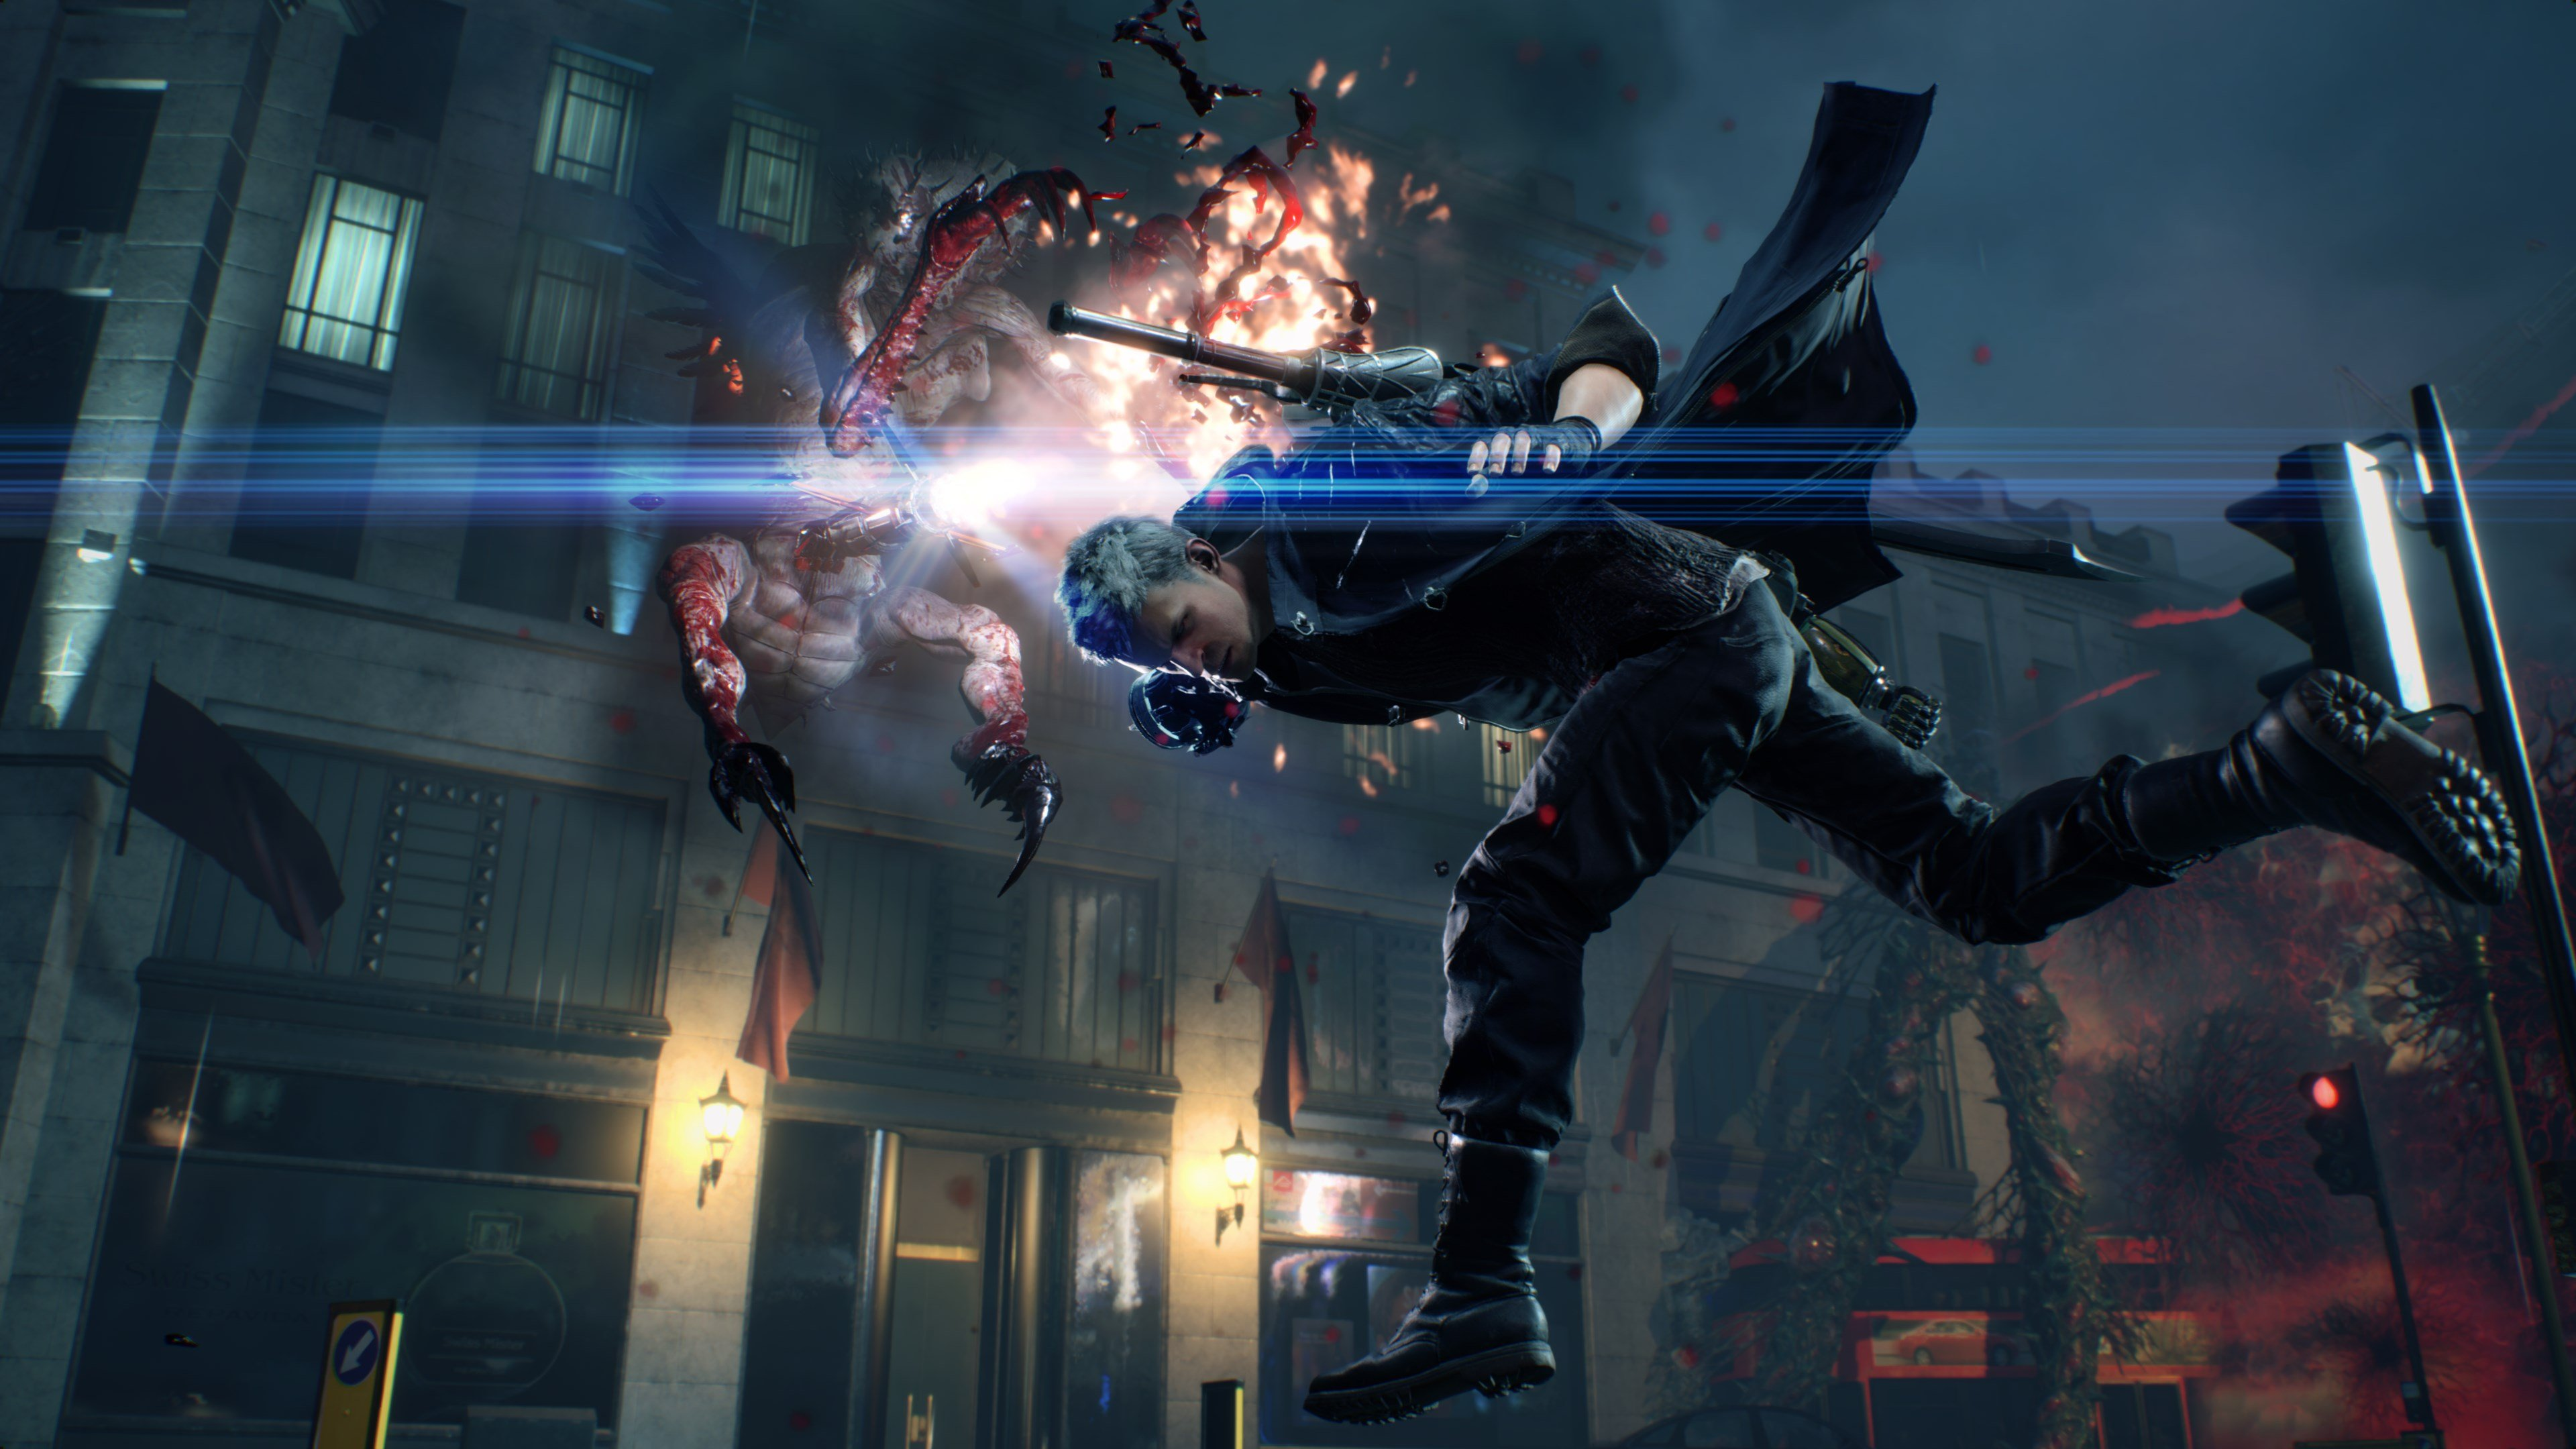 The Son of Sparda difficulty setting changes how enemies behave in combat. By beating Devil May Cry 5 on Son of Sparda, you'll unlock harder difficulty settings including Dante Must Die.